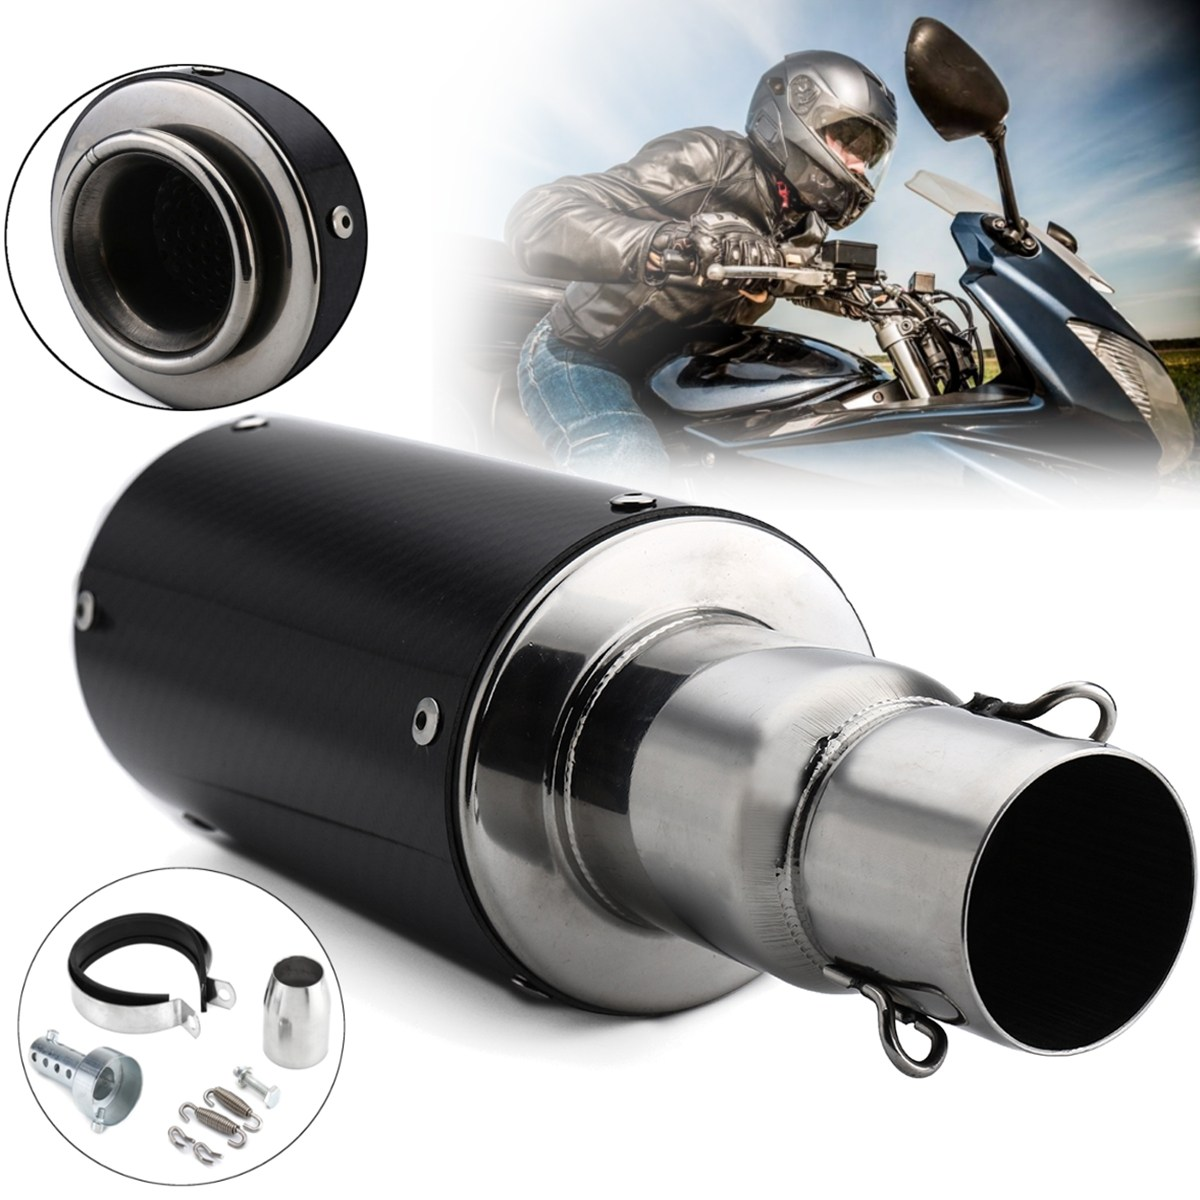 38~51mm Smooth Carbon Fiber Stainless Steel Universal Motorcycle Exhaust Muffler Pipe For Dirt Street Bike Scooter ATV Quad